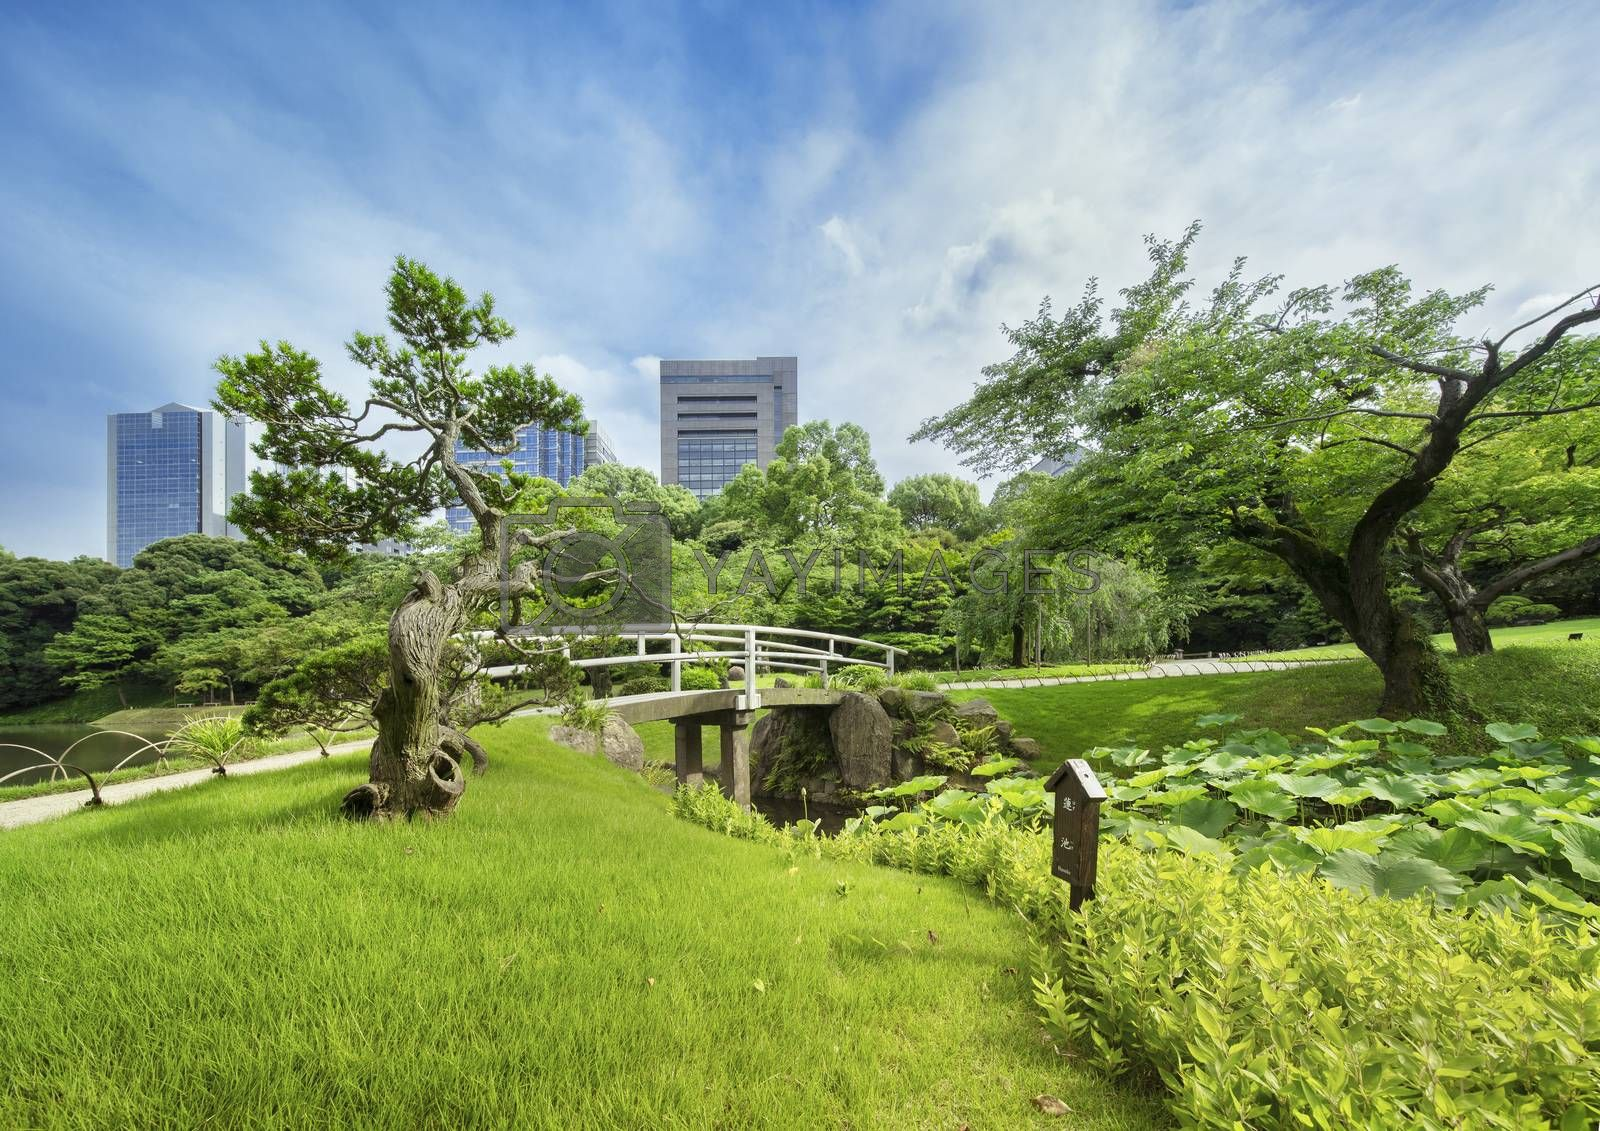 Small Japanese bridge of Koishikawa Korakuen Park in Tokyo surrounded by beautiful pines, maples and cherry trees. It separates the main lake Osensui, which is an evocation of Lake Biwa and the Hasuike Stall filled with sacred lotus whose buds are about to bloom.